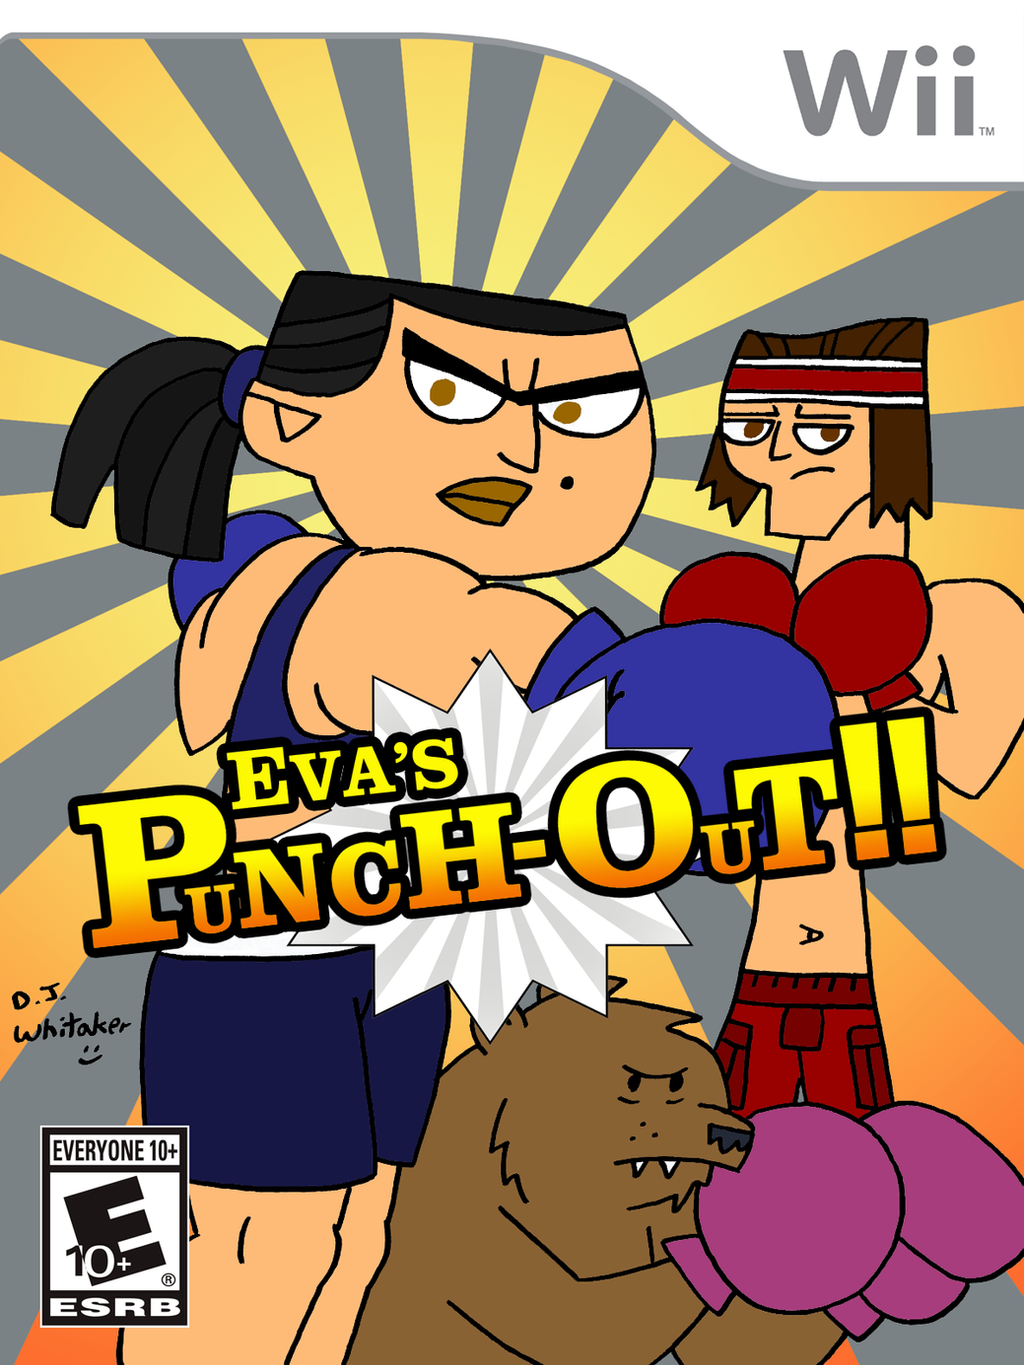 Eva 39 s punch out on wii by djgames on deviantart for What is a punch out list